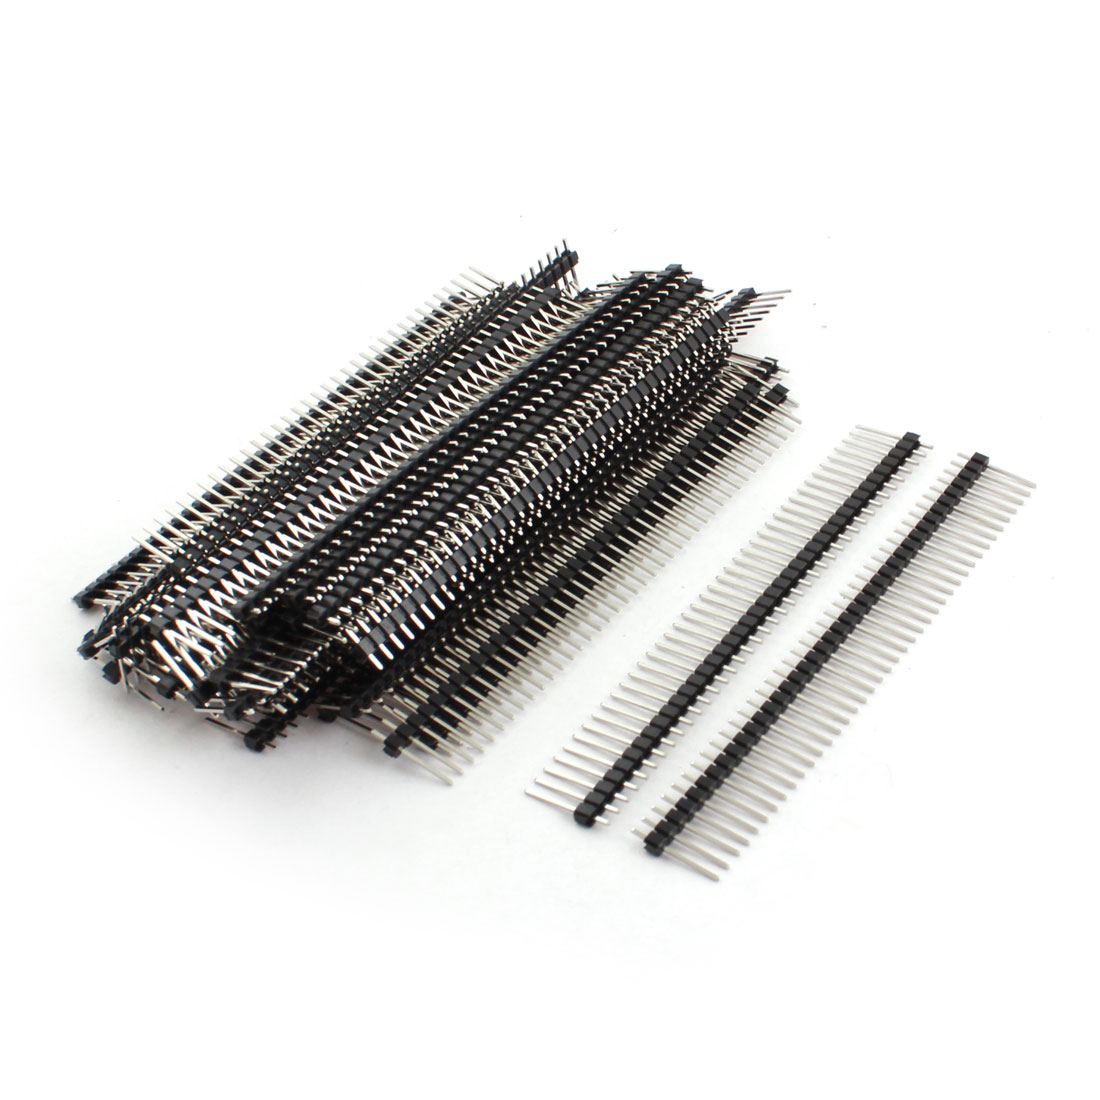 50Pcs 2.54mm Pitch Single Row 40Pin Male Through Hole Straight Pin Header Connector Strip 15mm Length